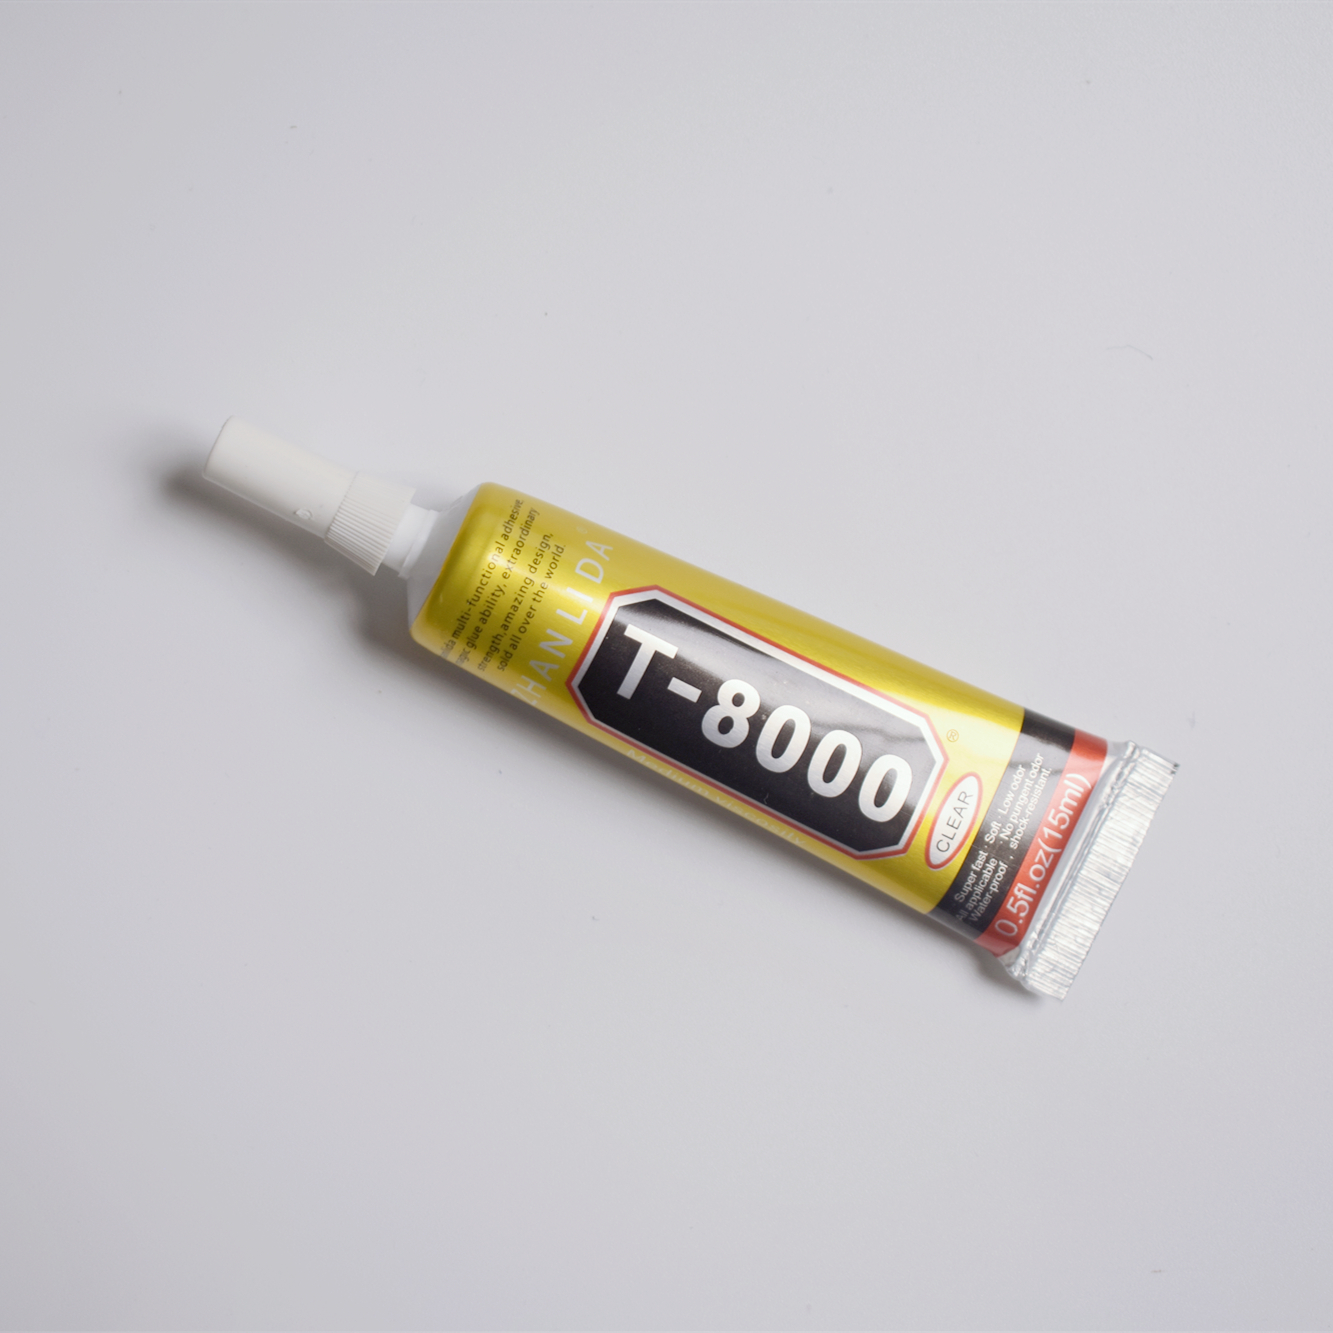 1 Pcs 15ml T-8000 Glue <font><b>T8000</b></font> Multi Purpose Glue Adhesive Epoxy Resin Repair Cell Phone LCD Touch Screen Super Glue T 8000 image